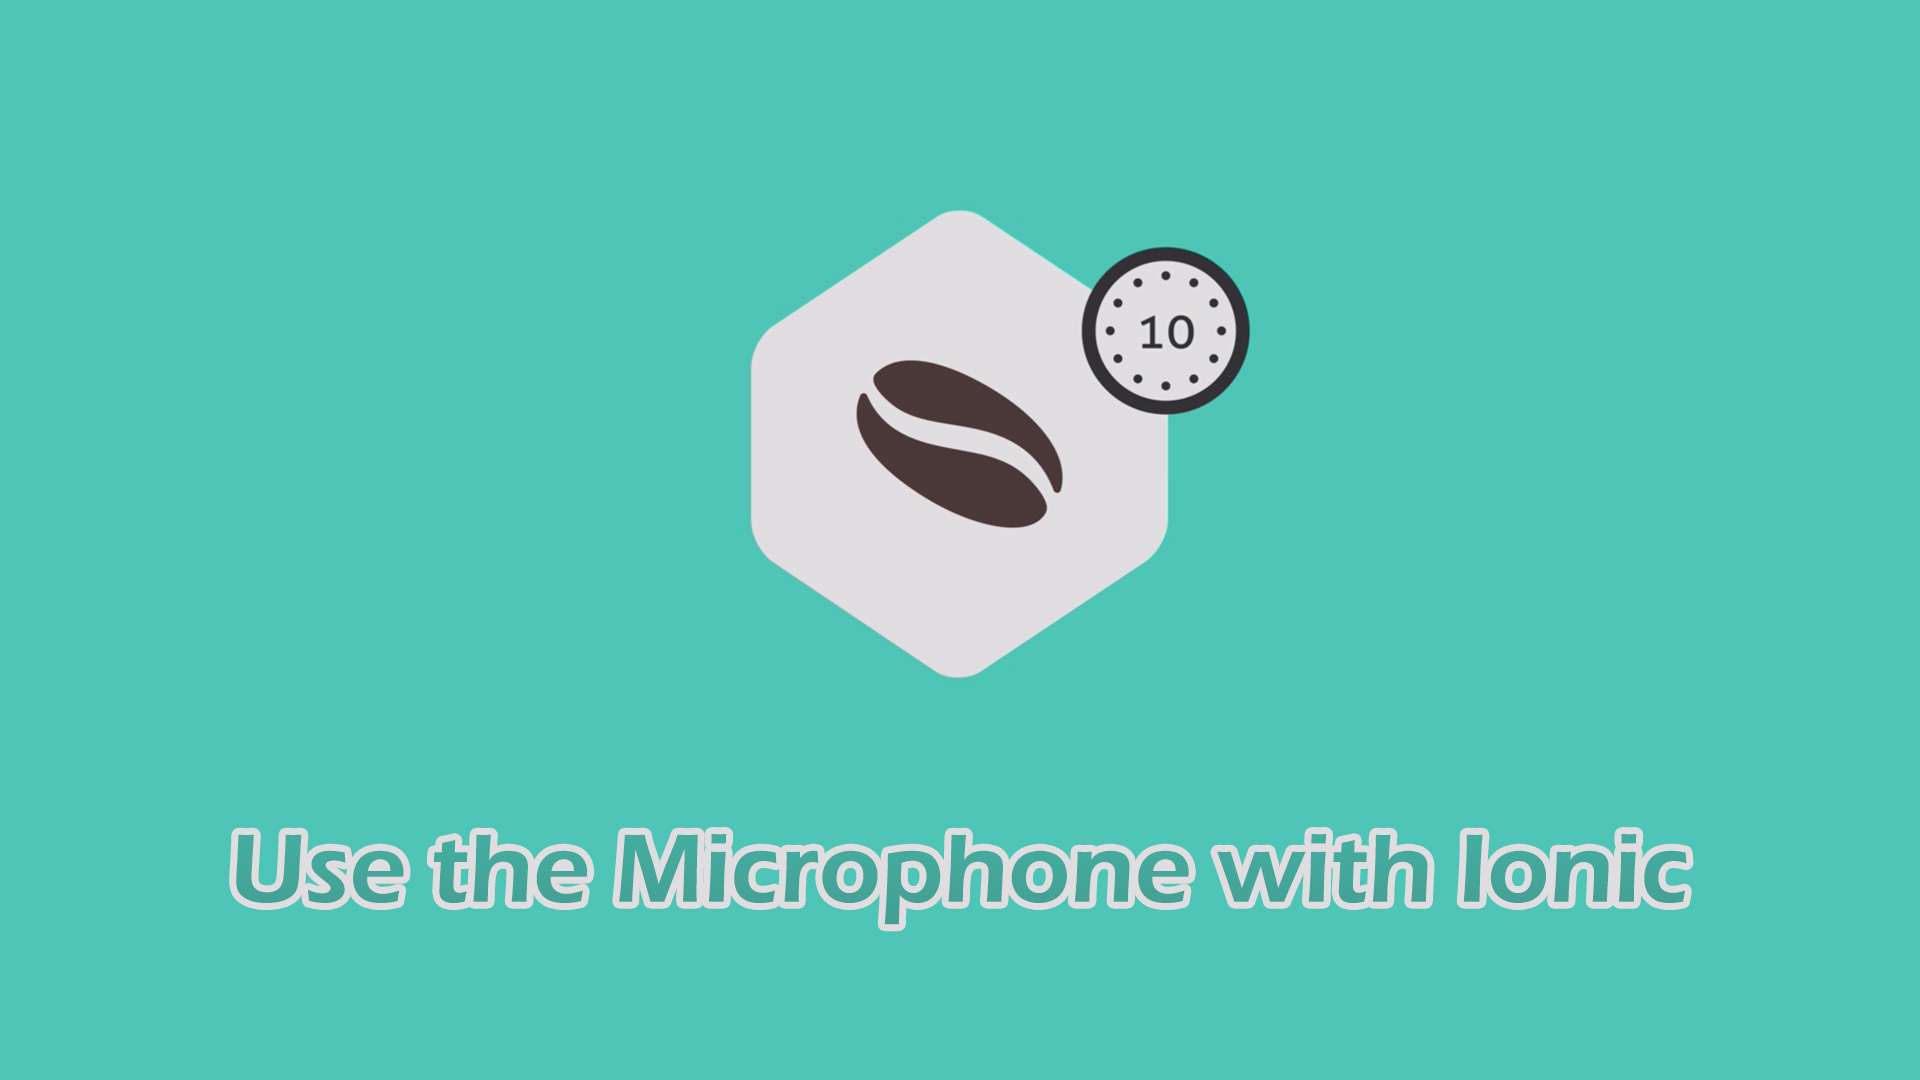 Use the Microphone with Ionic